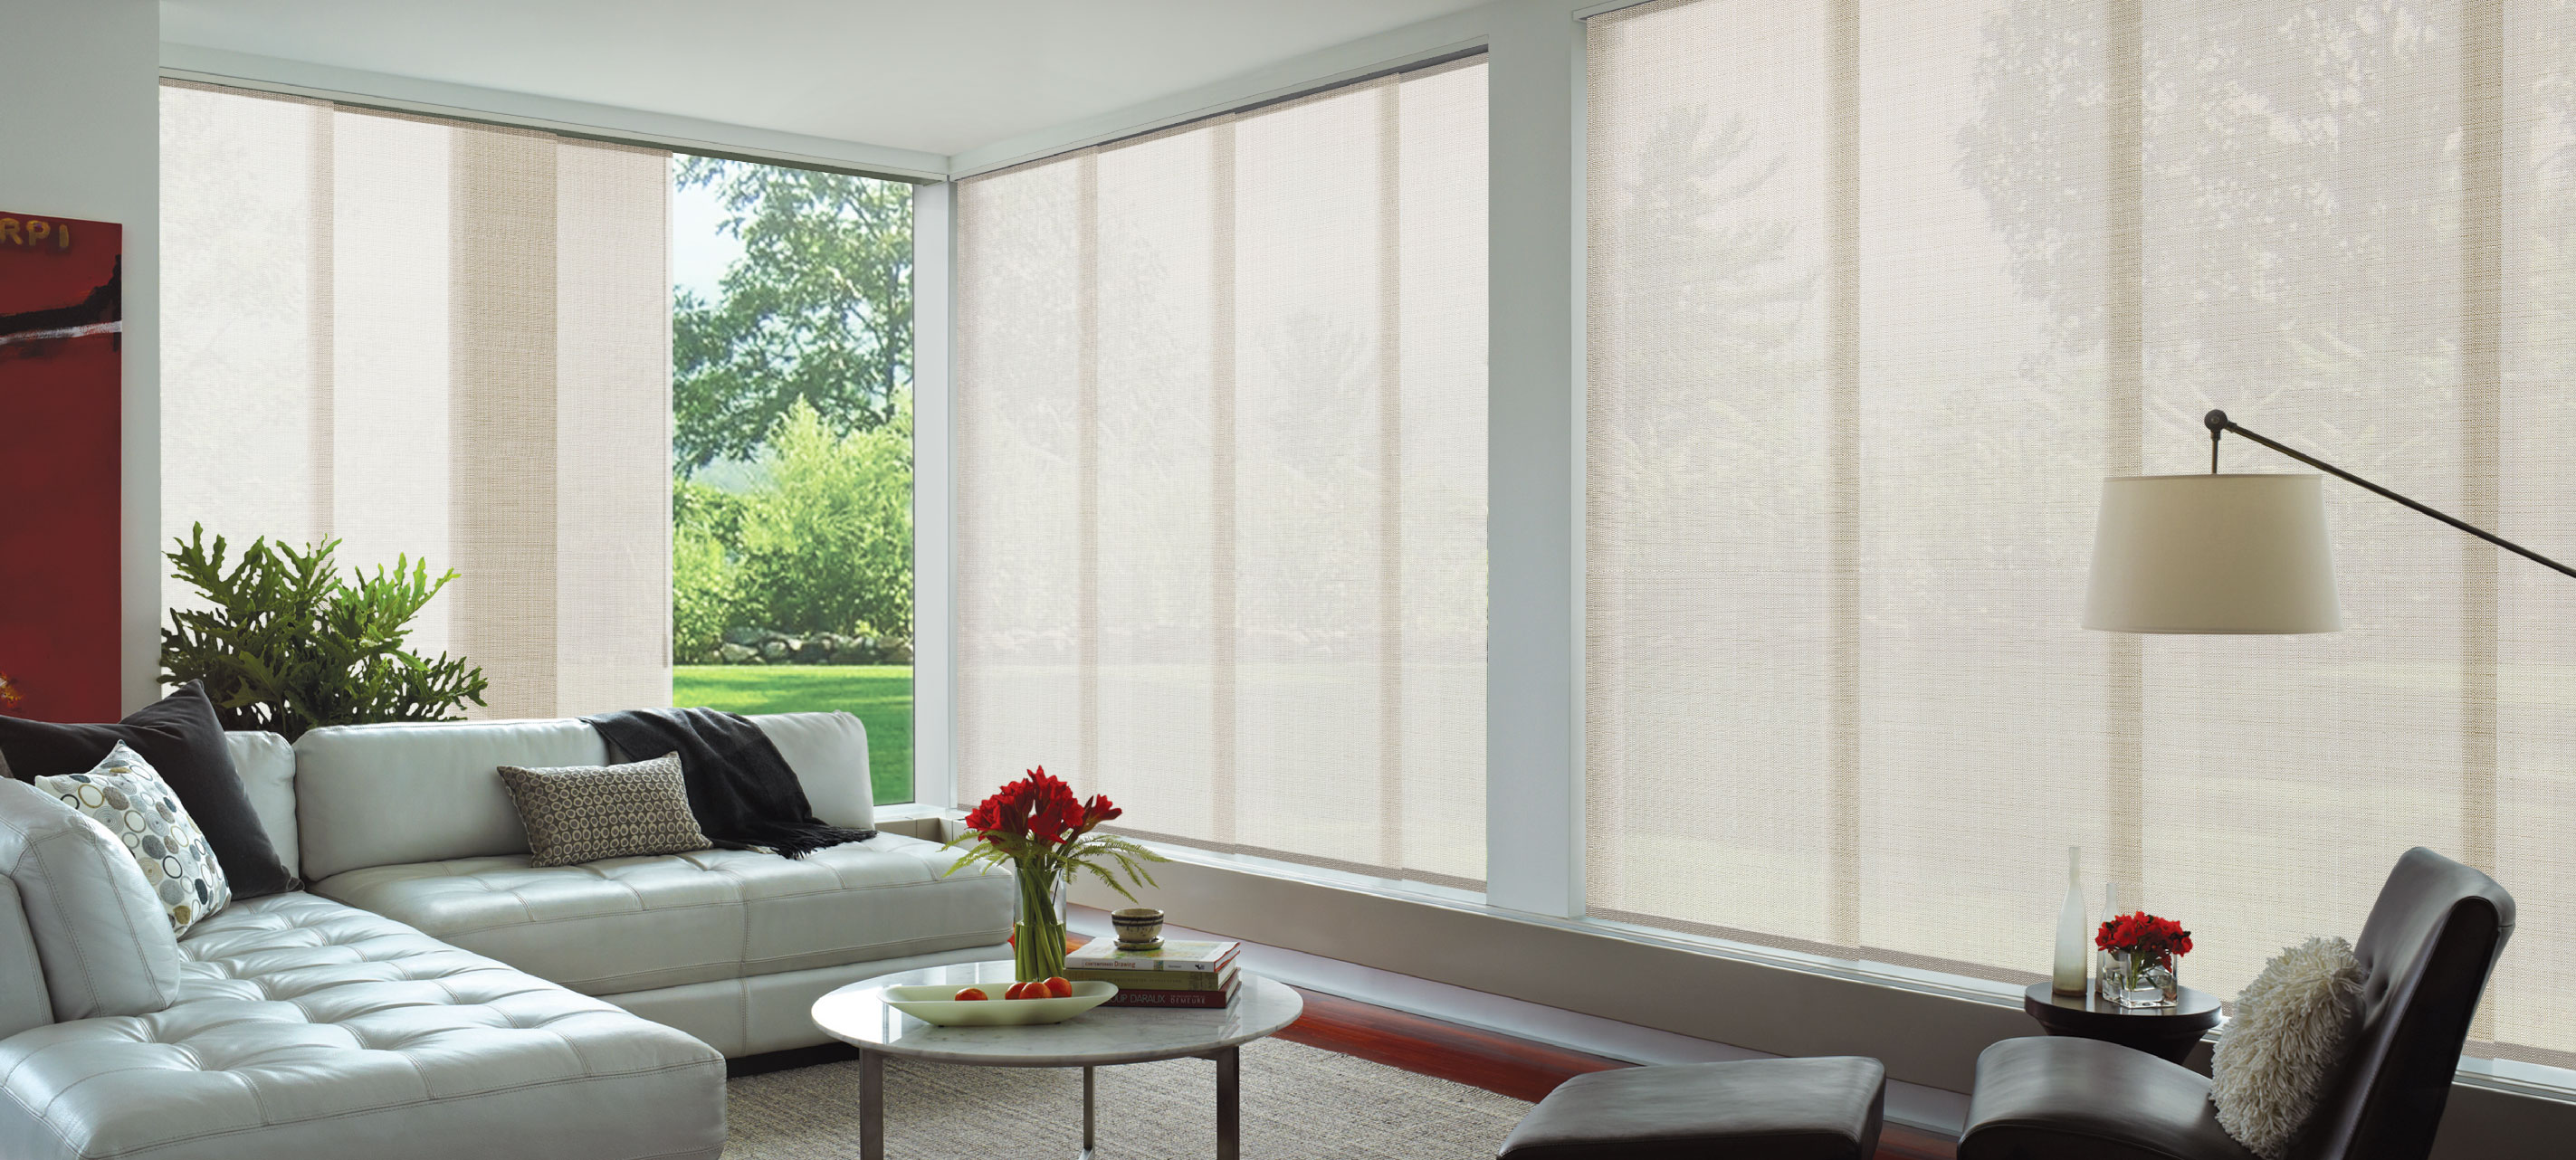 Luxaflex - Products - Softshades and Fabrics - Panel Glide Blinds Banner 2 image